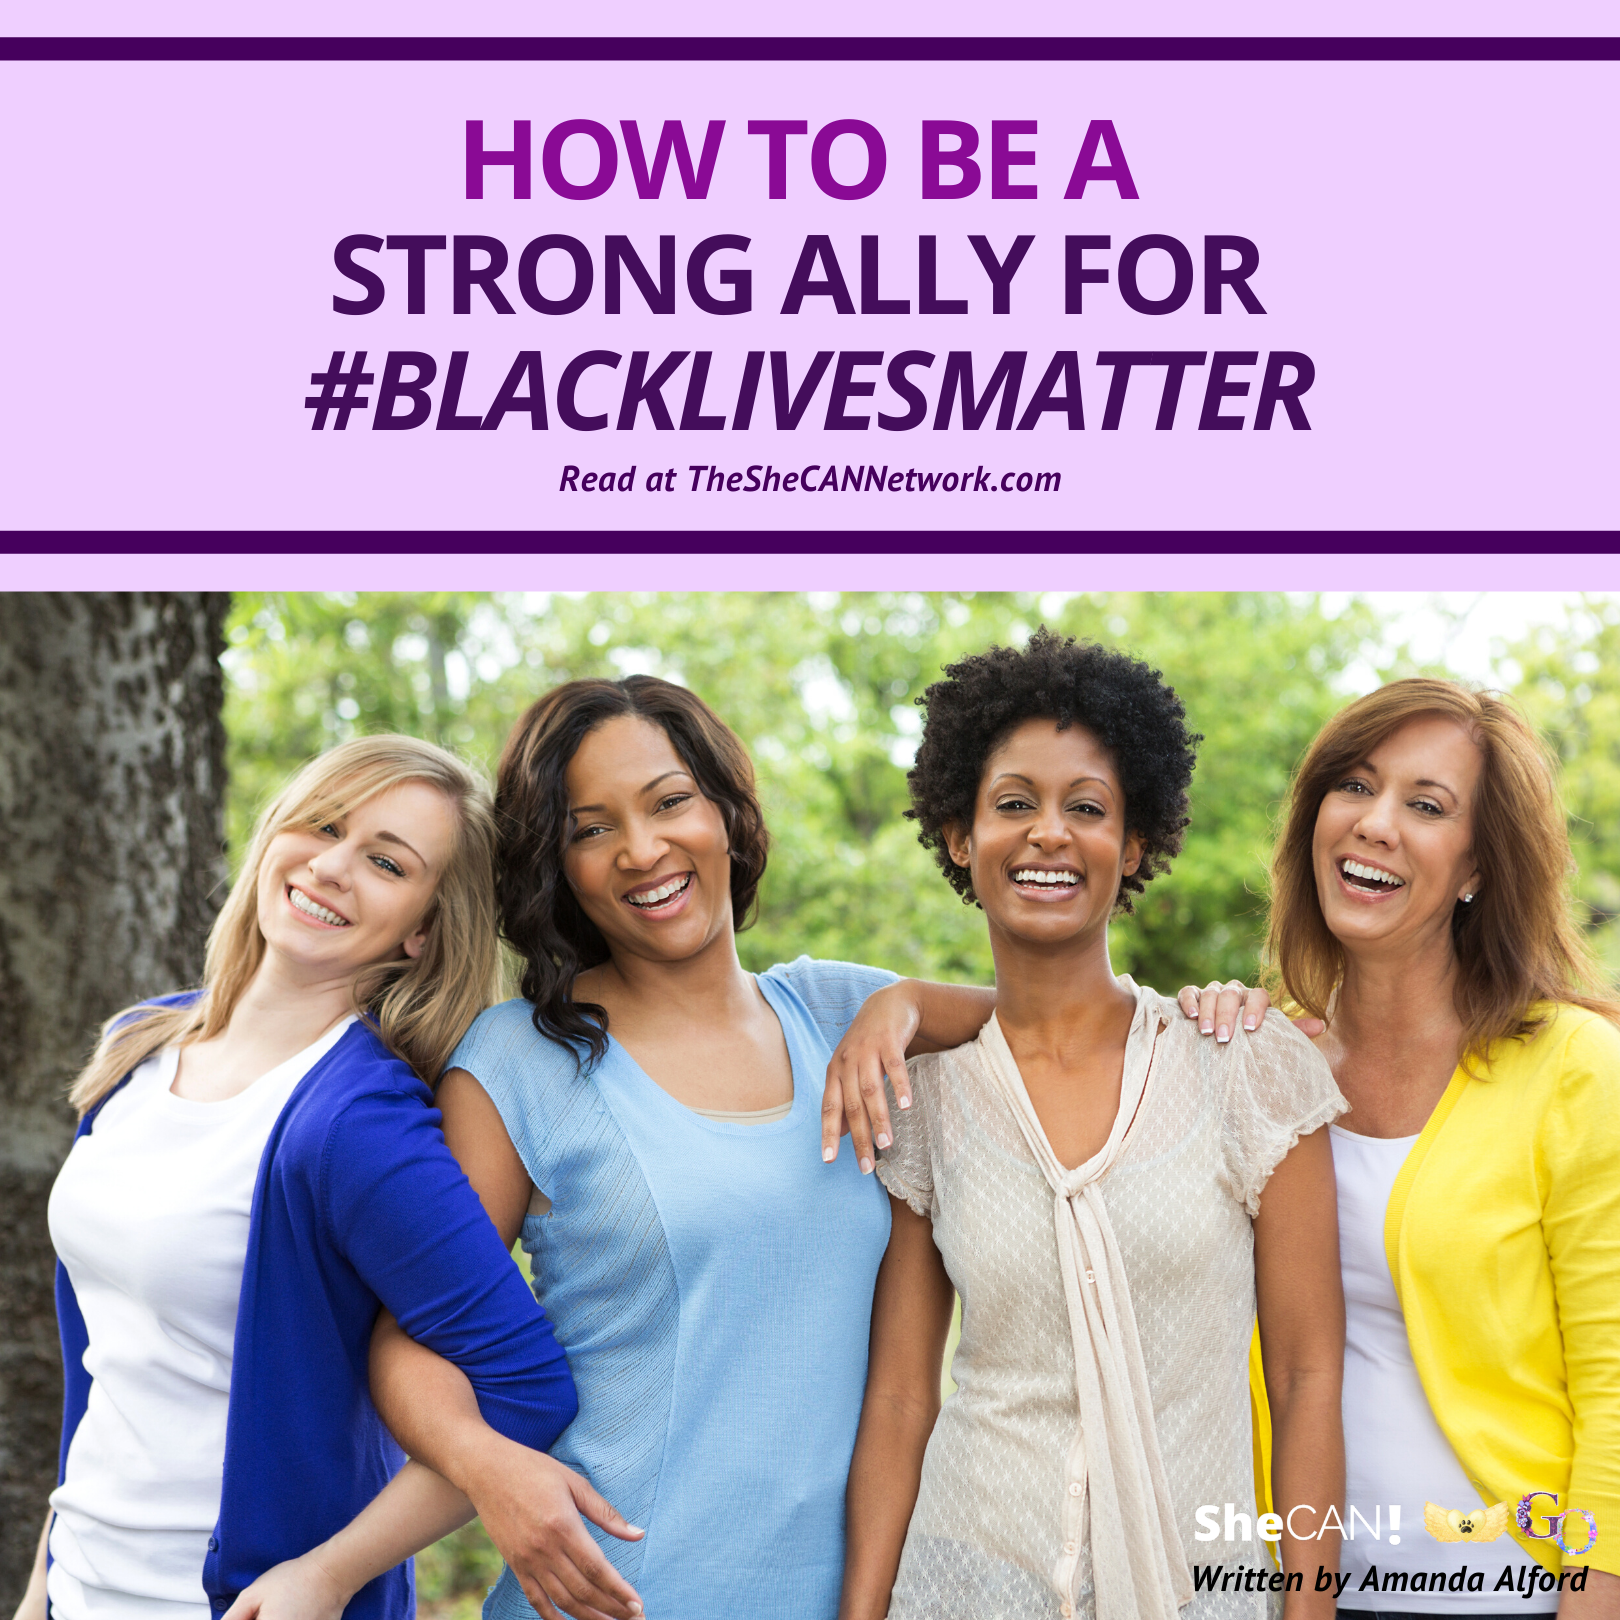 The SheCAN! Network Blog - how to be a strong ally for Black Lives Matter?